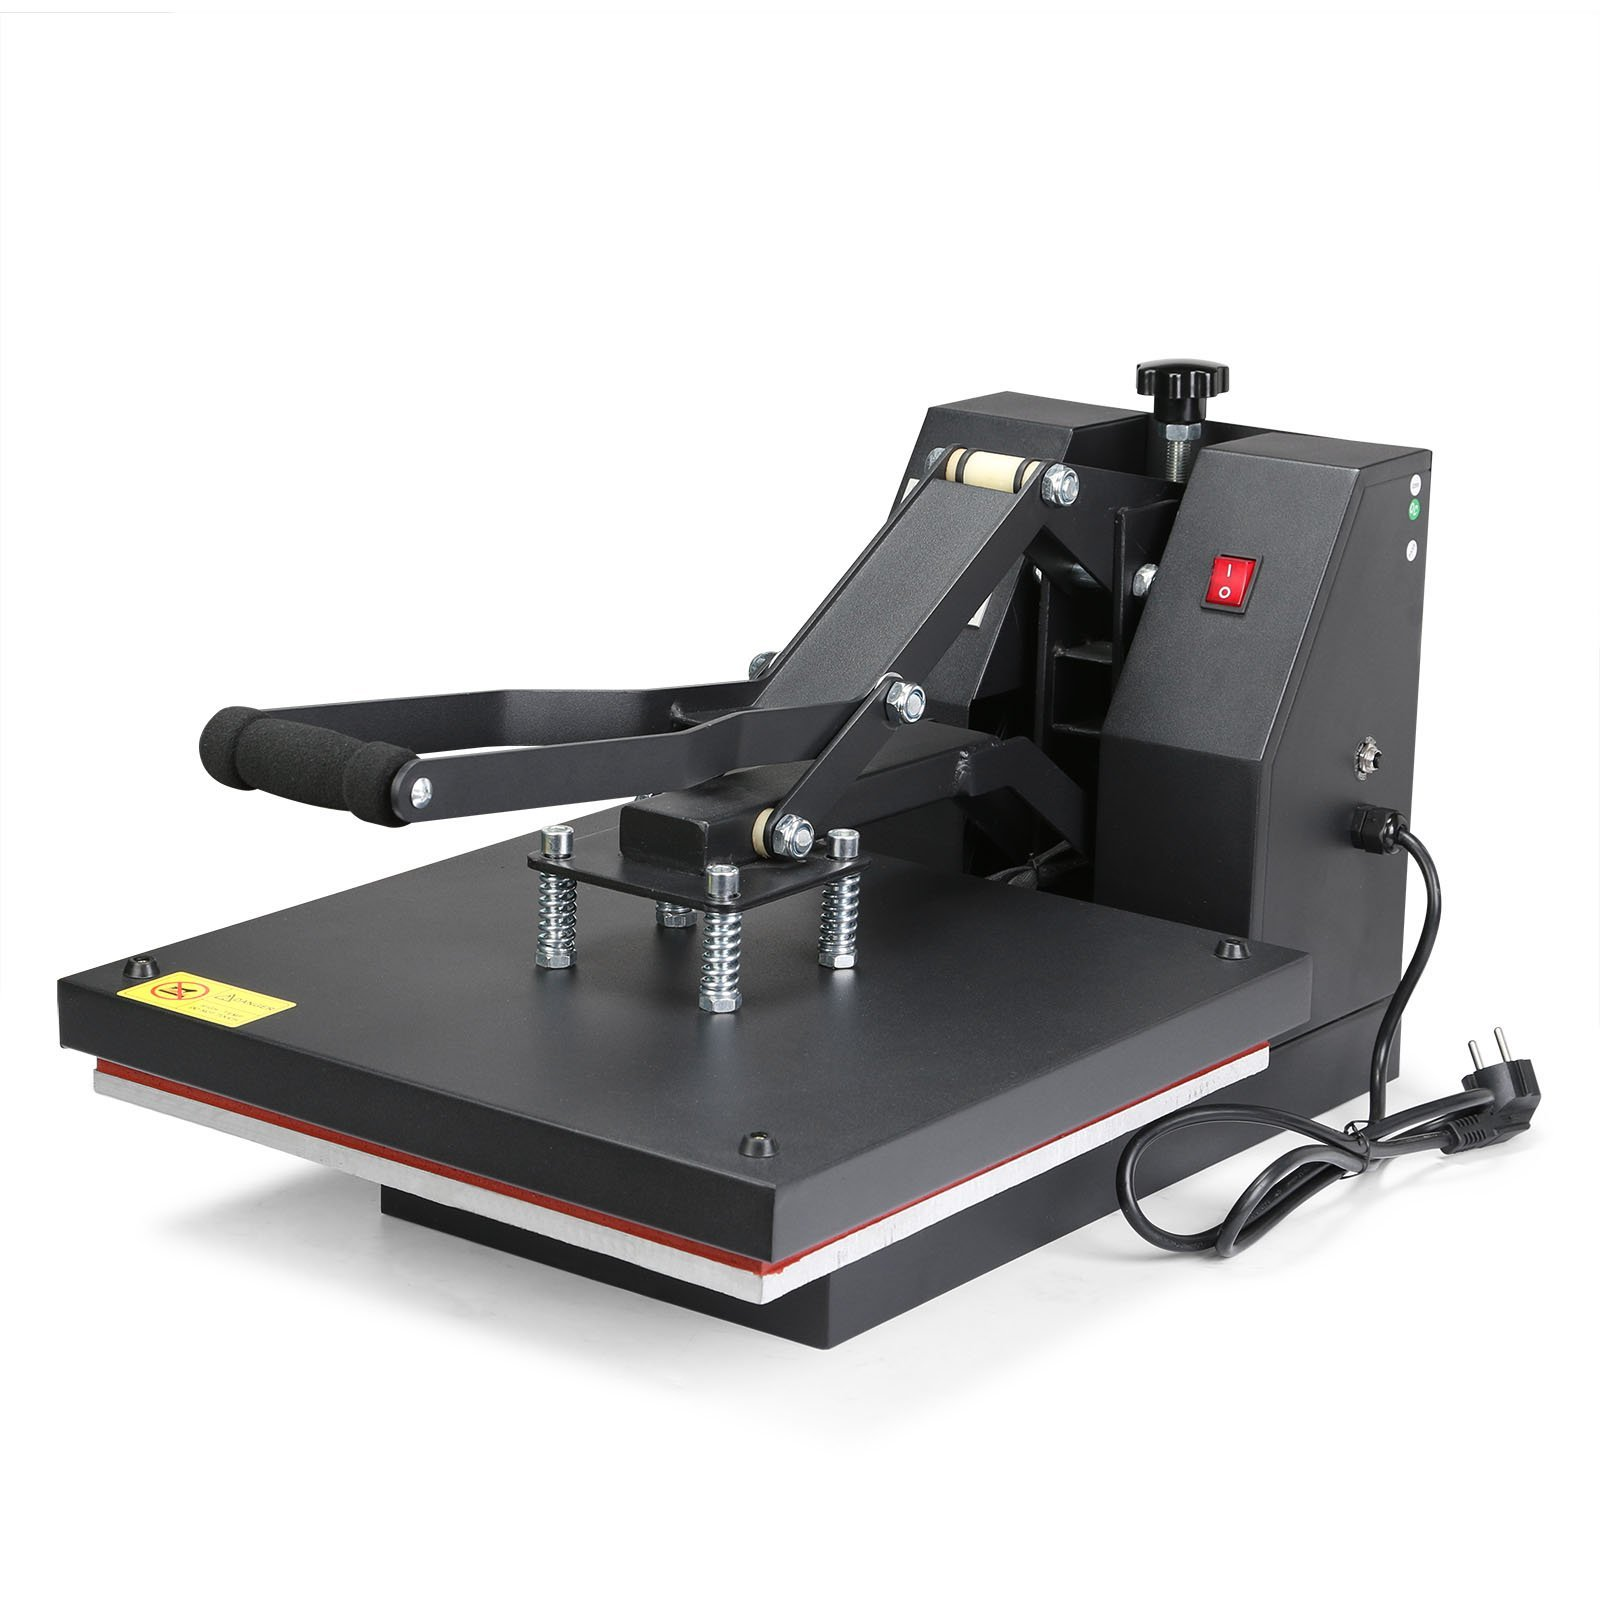 VEVOR Digital Clamshell High Pressure Heat Press Machine for T-Shirts, LCD Display Heavy Duty Commercial-Grade, 15'' H x 15'' W, 1400W